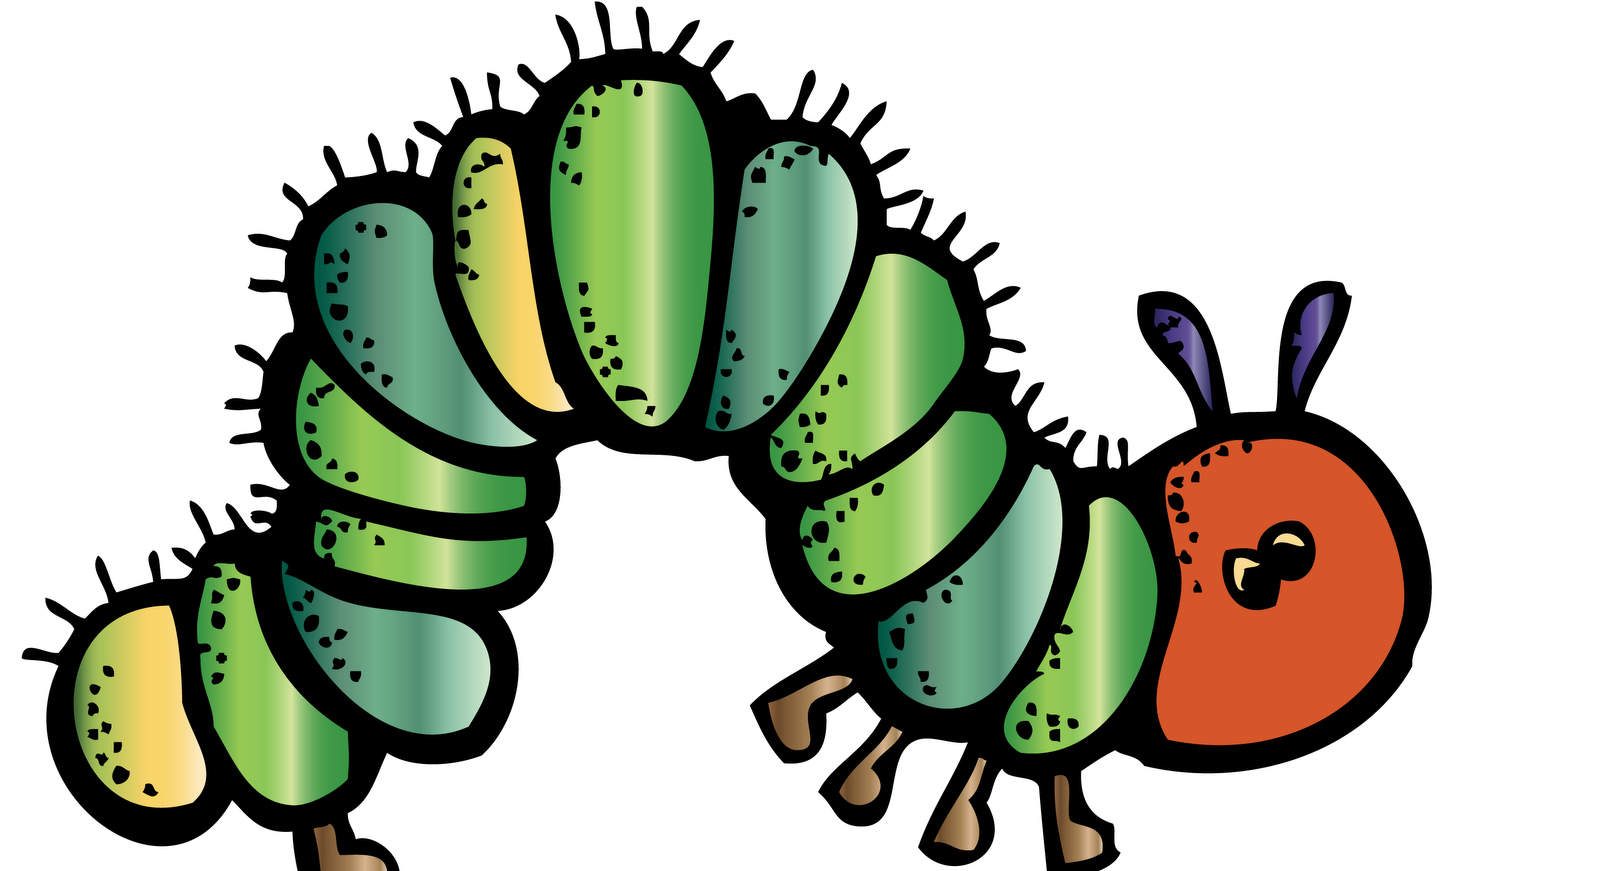 Starwars clipart melonheadz. Caterpillar colored cute for